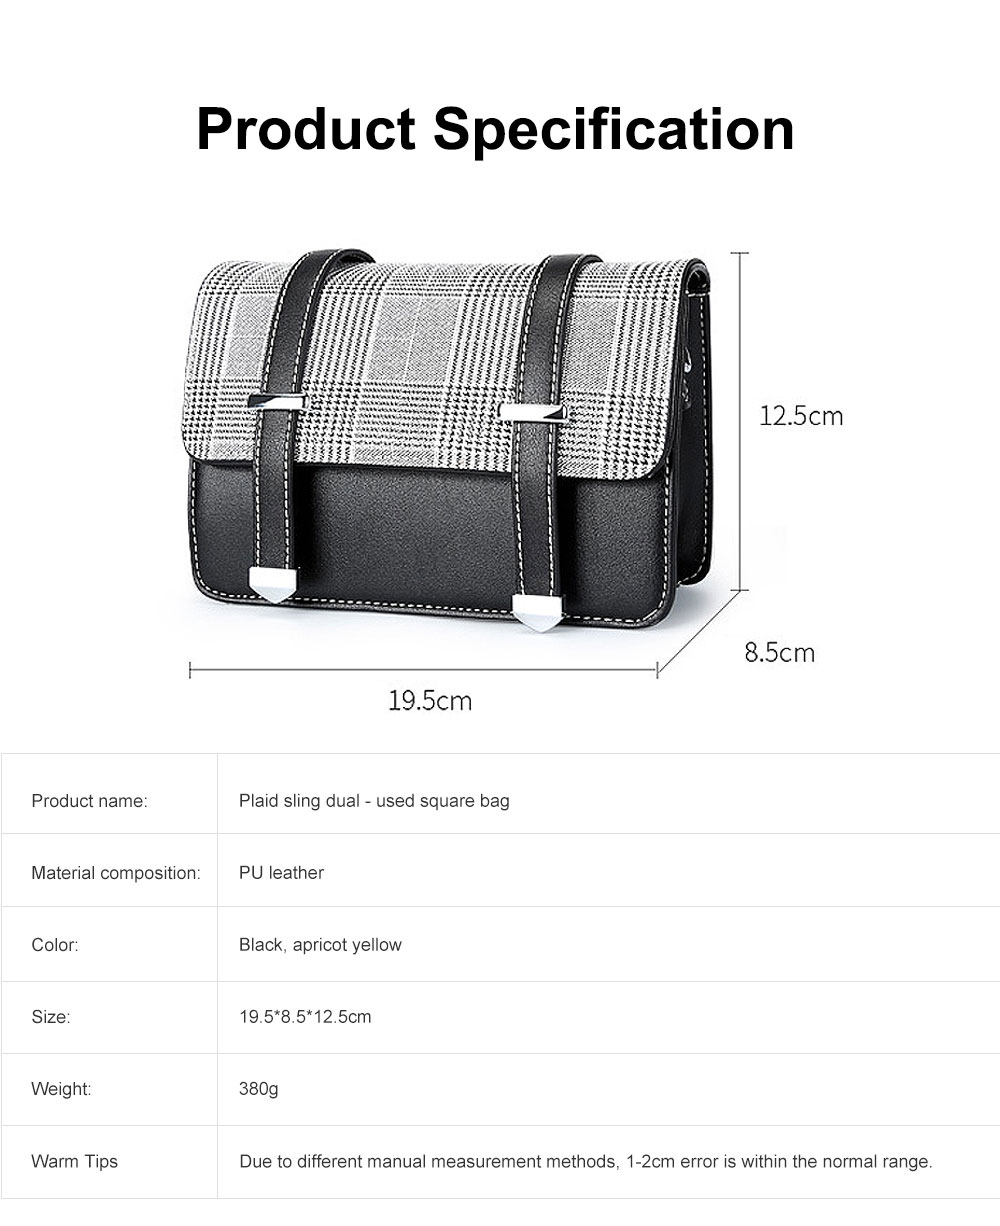 2019 British Style Women Shoulder Bag Crossbody Plaid Sling Dual Used Bag, Euramerican Fashion Contracted Square Bag 6